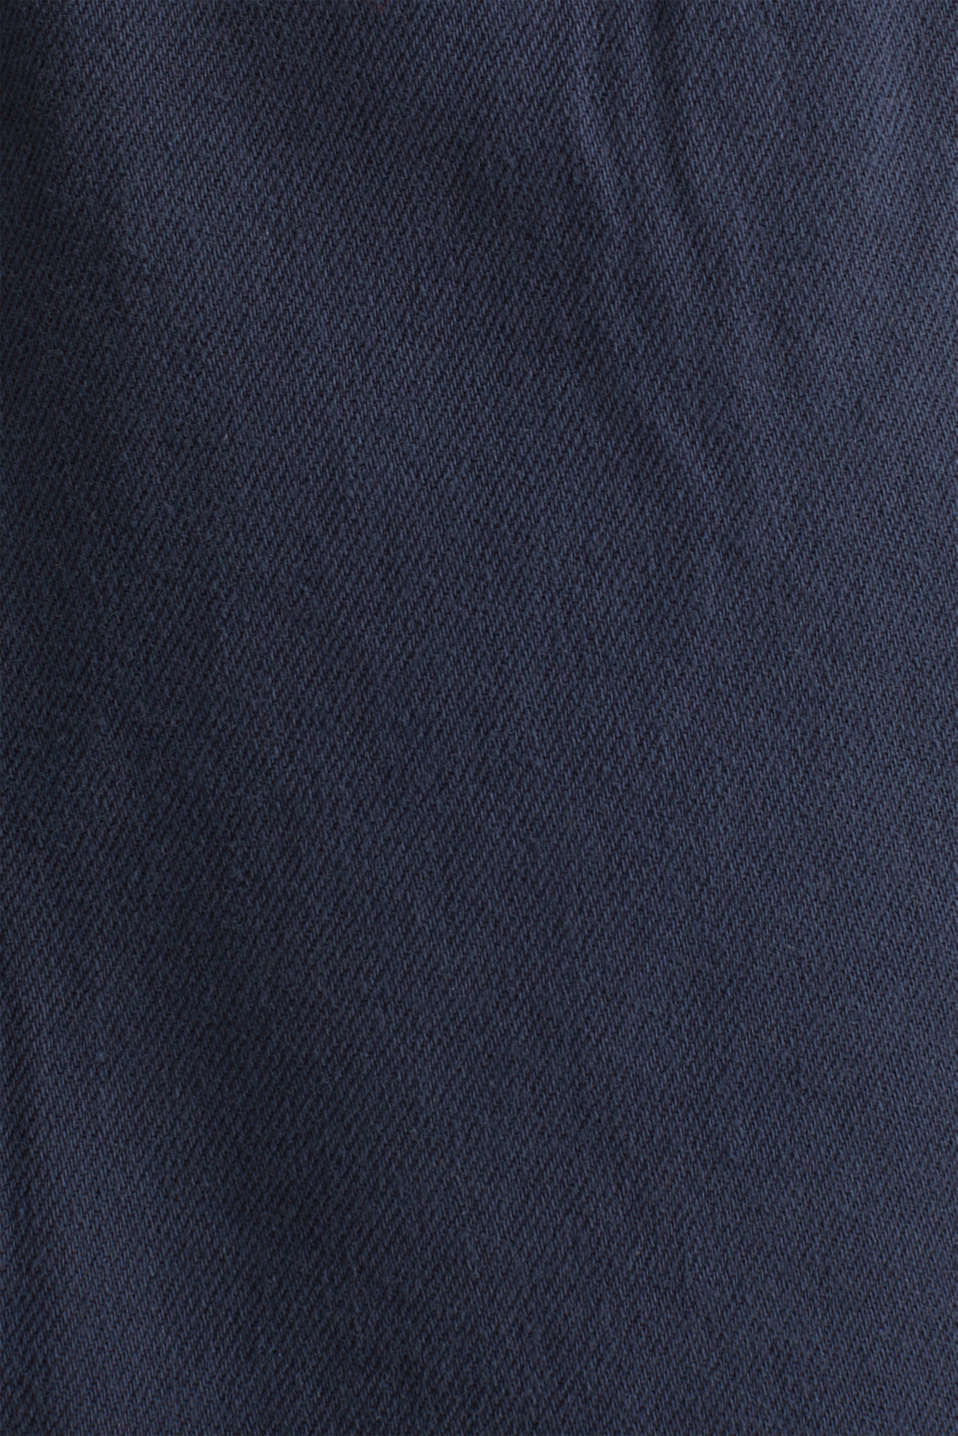 shorts in 100% cotton, DARK BLUE, detail image number 4